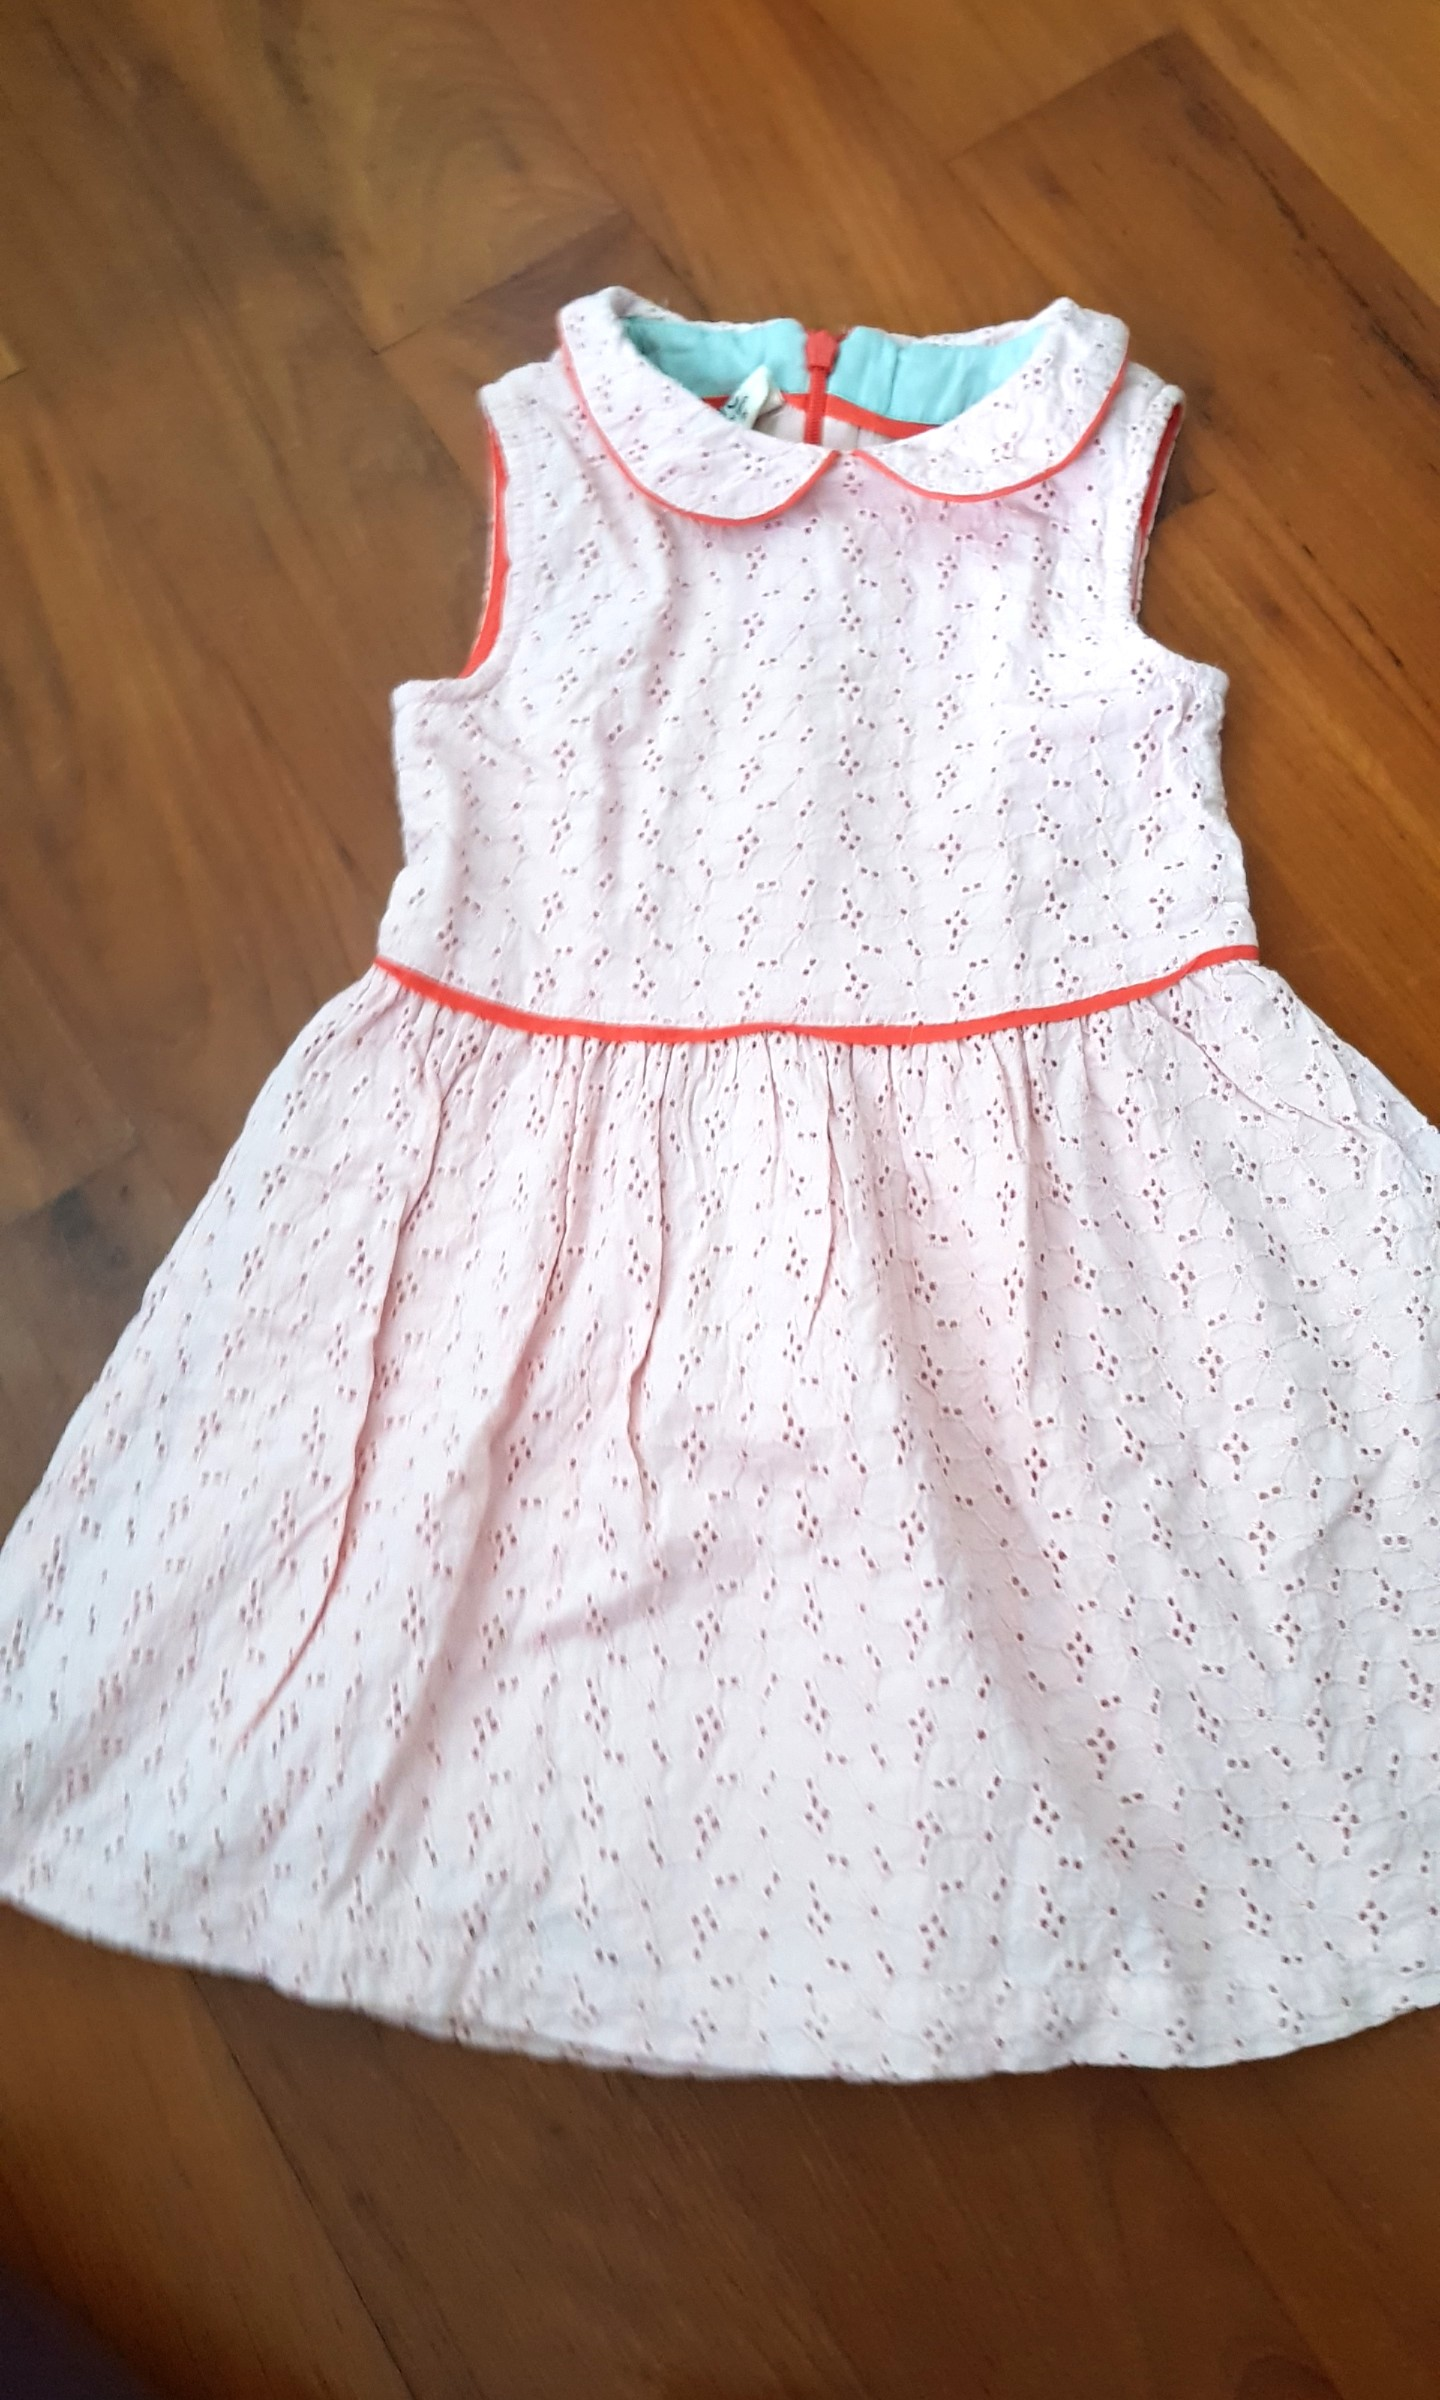 9b45ea47e Baby Girl Dress Mini Boden, Babies & Kids, Babies Apparel on Carousell